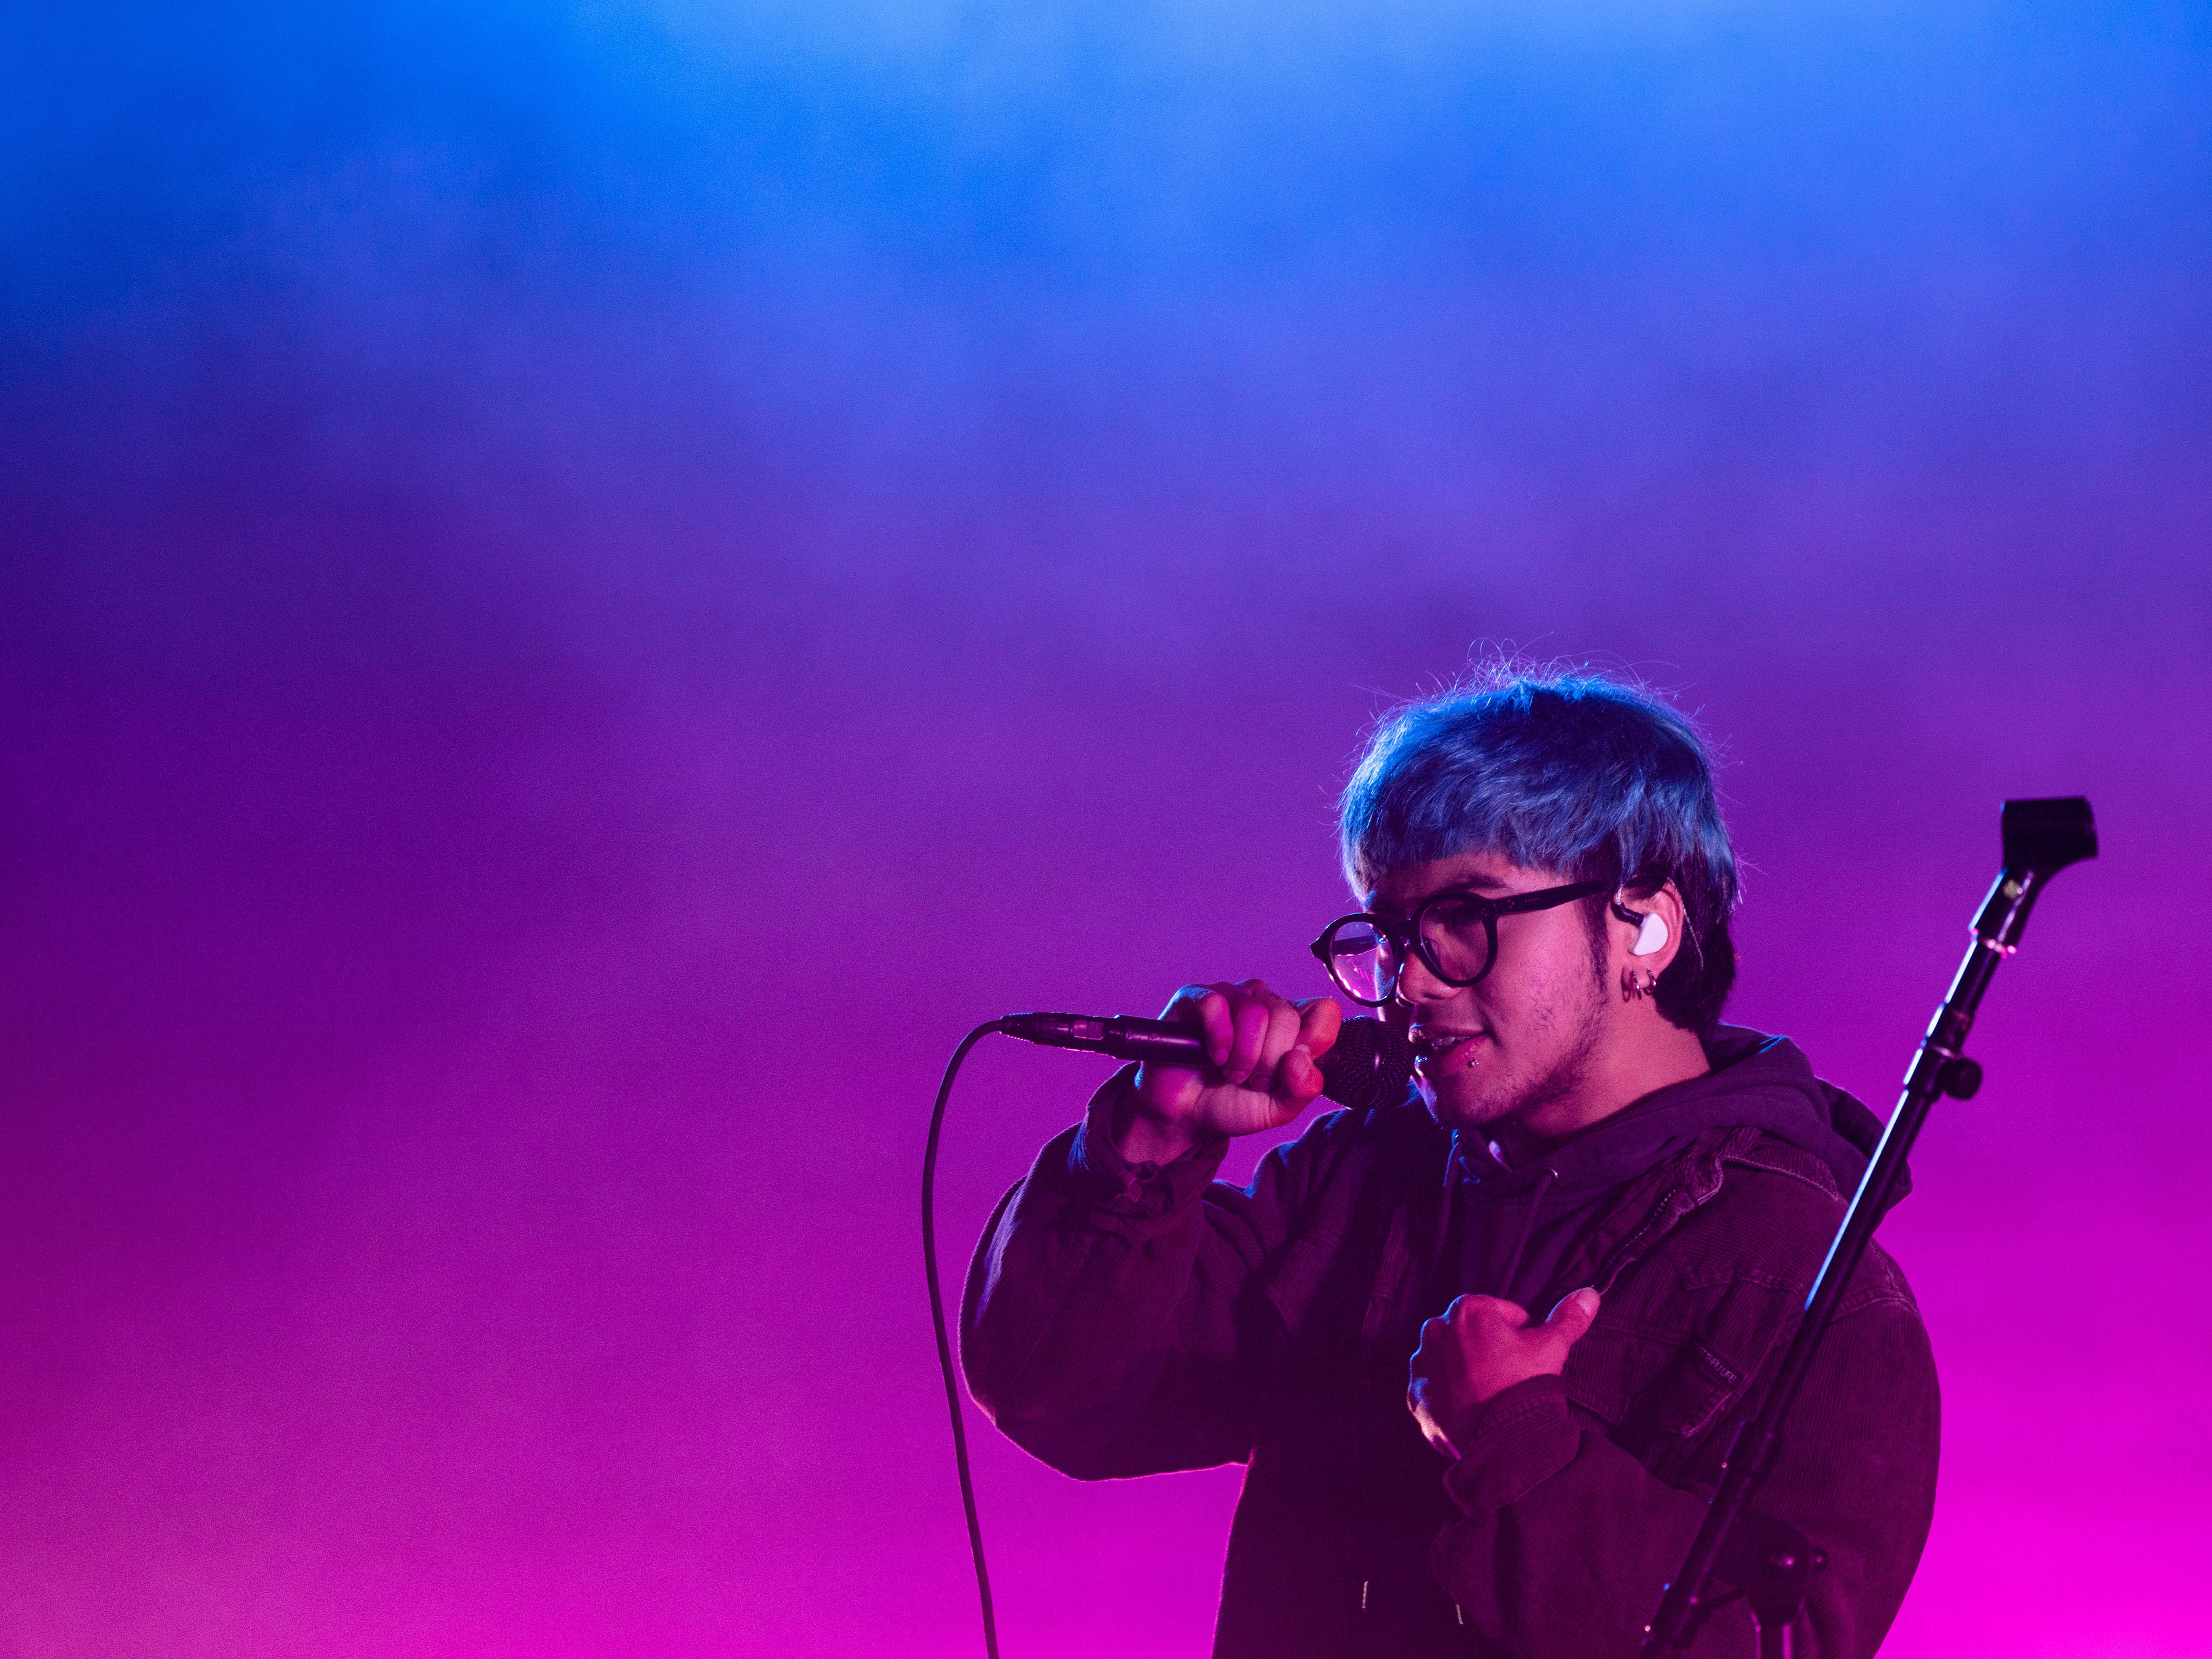 Guendoline Rome Viray Gomez, better known as No Rome, performs the opening act before the Pale Wave and The 1975 performances at the PNC Pavilion on Sunday, May 12, 2019 in Cincinnati.